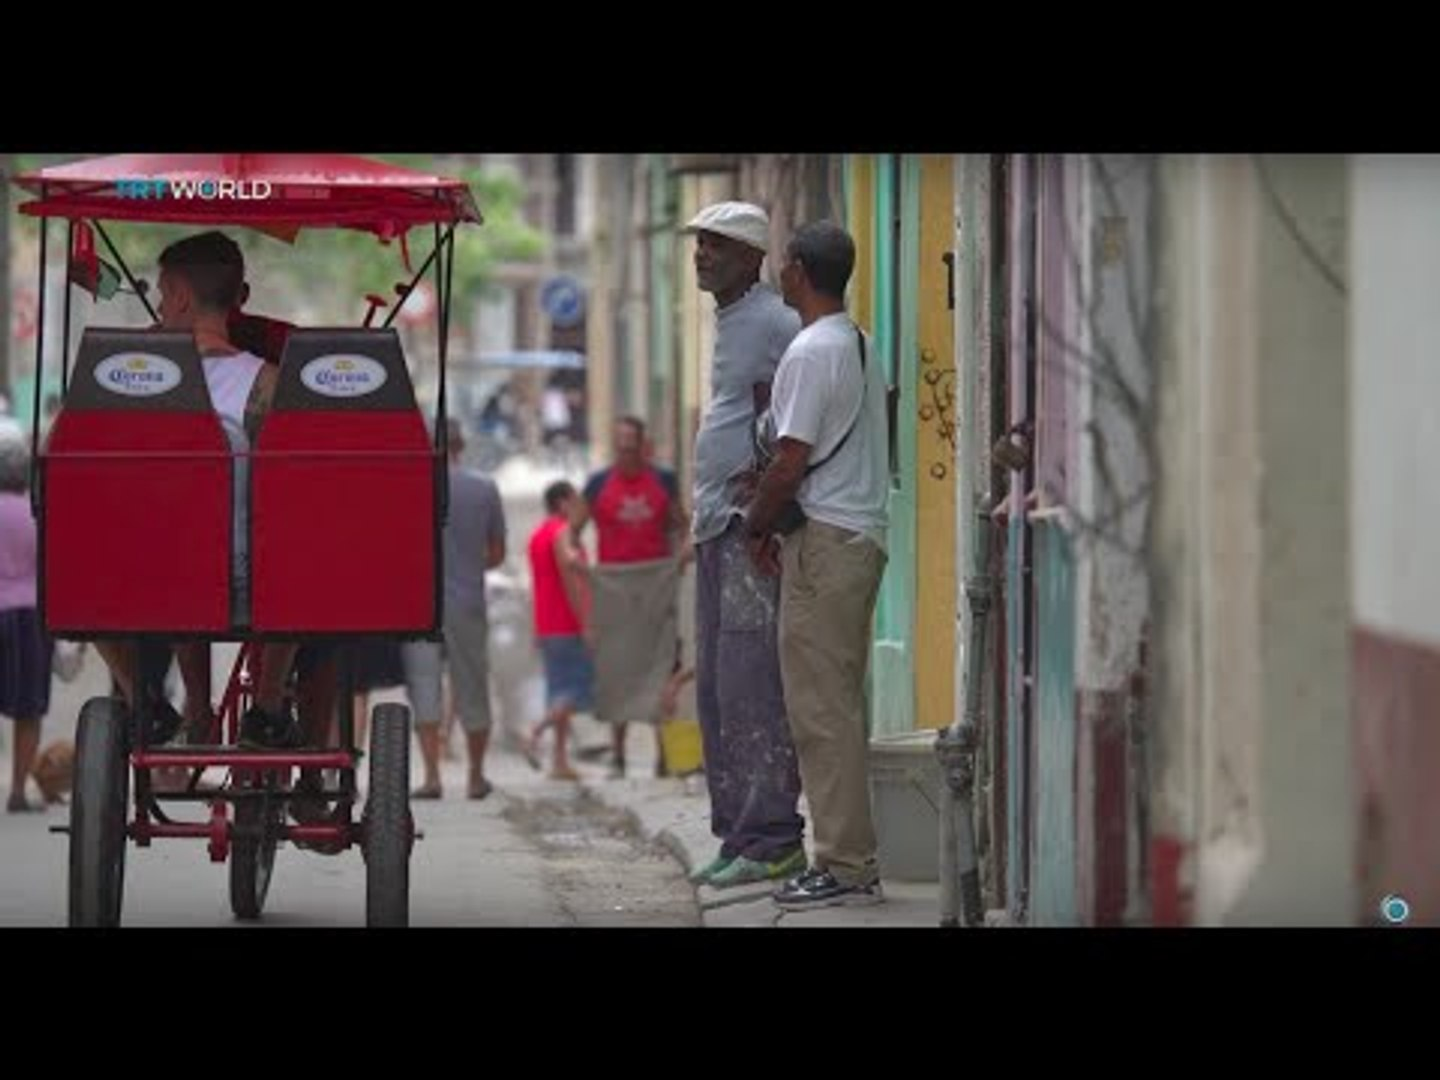 Foreign investment breathing life into Cuba, Anelise Borges reports